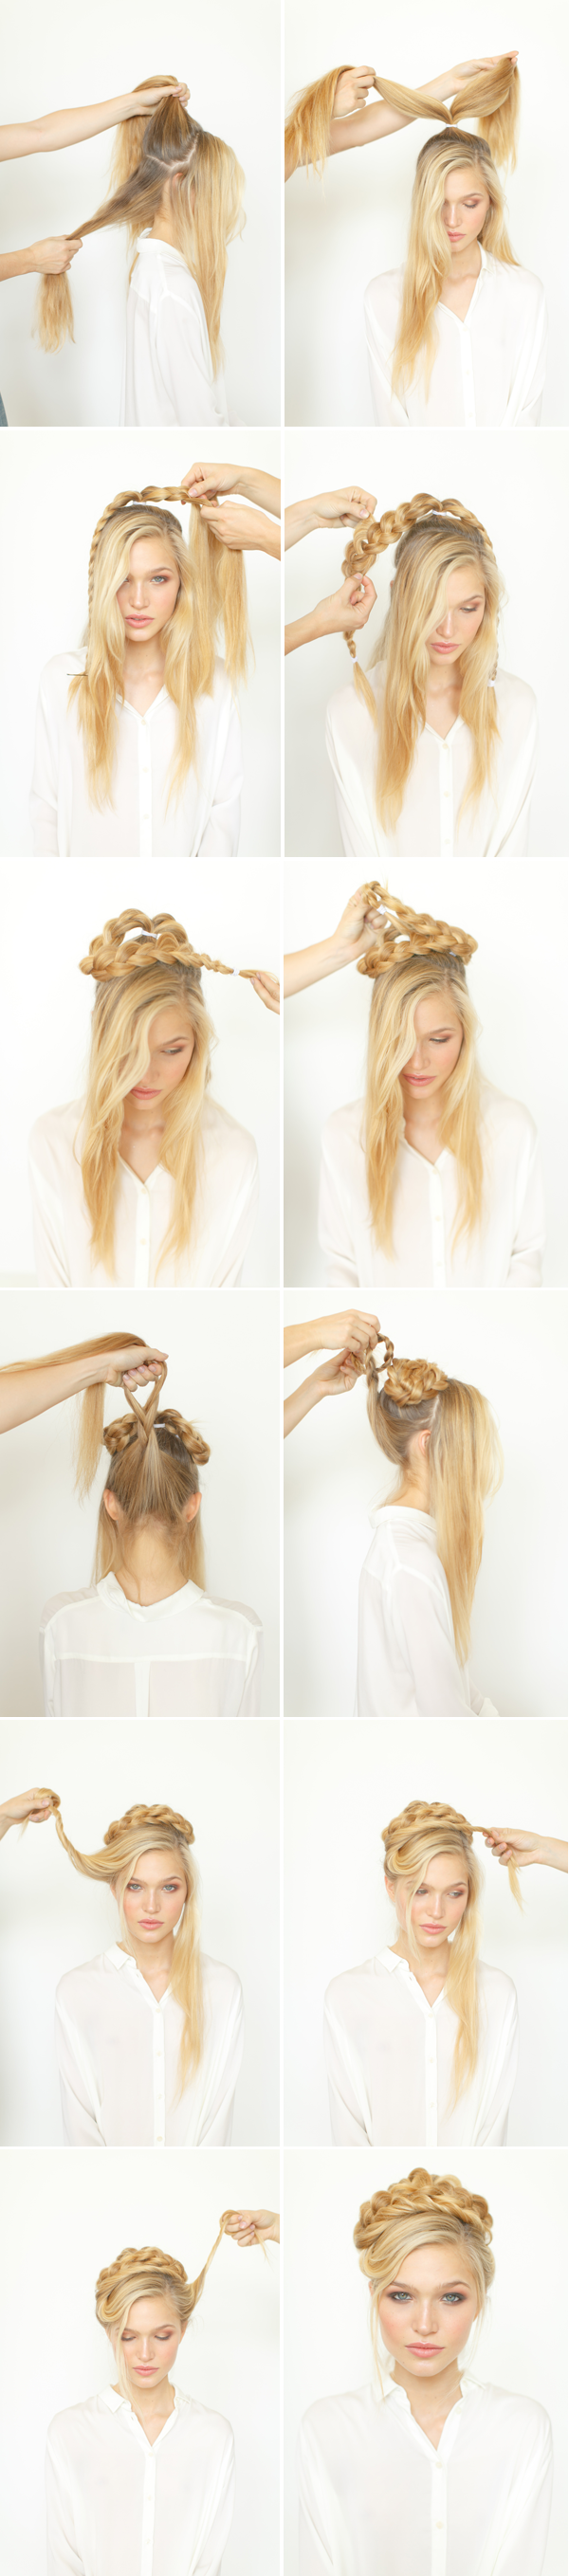 rope-braid-wedding-hairstyles-for-long-hair